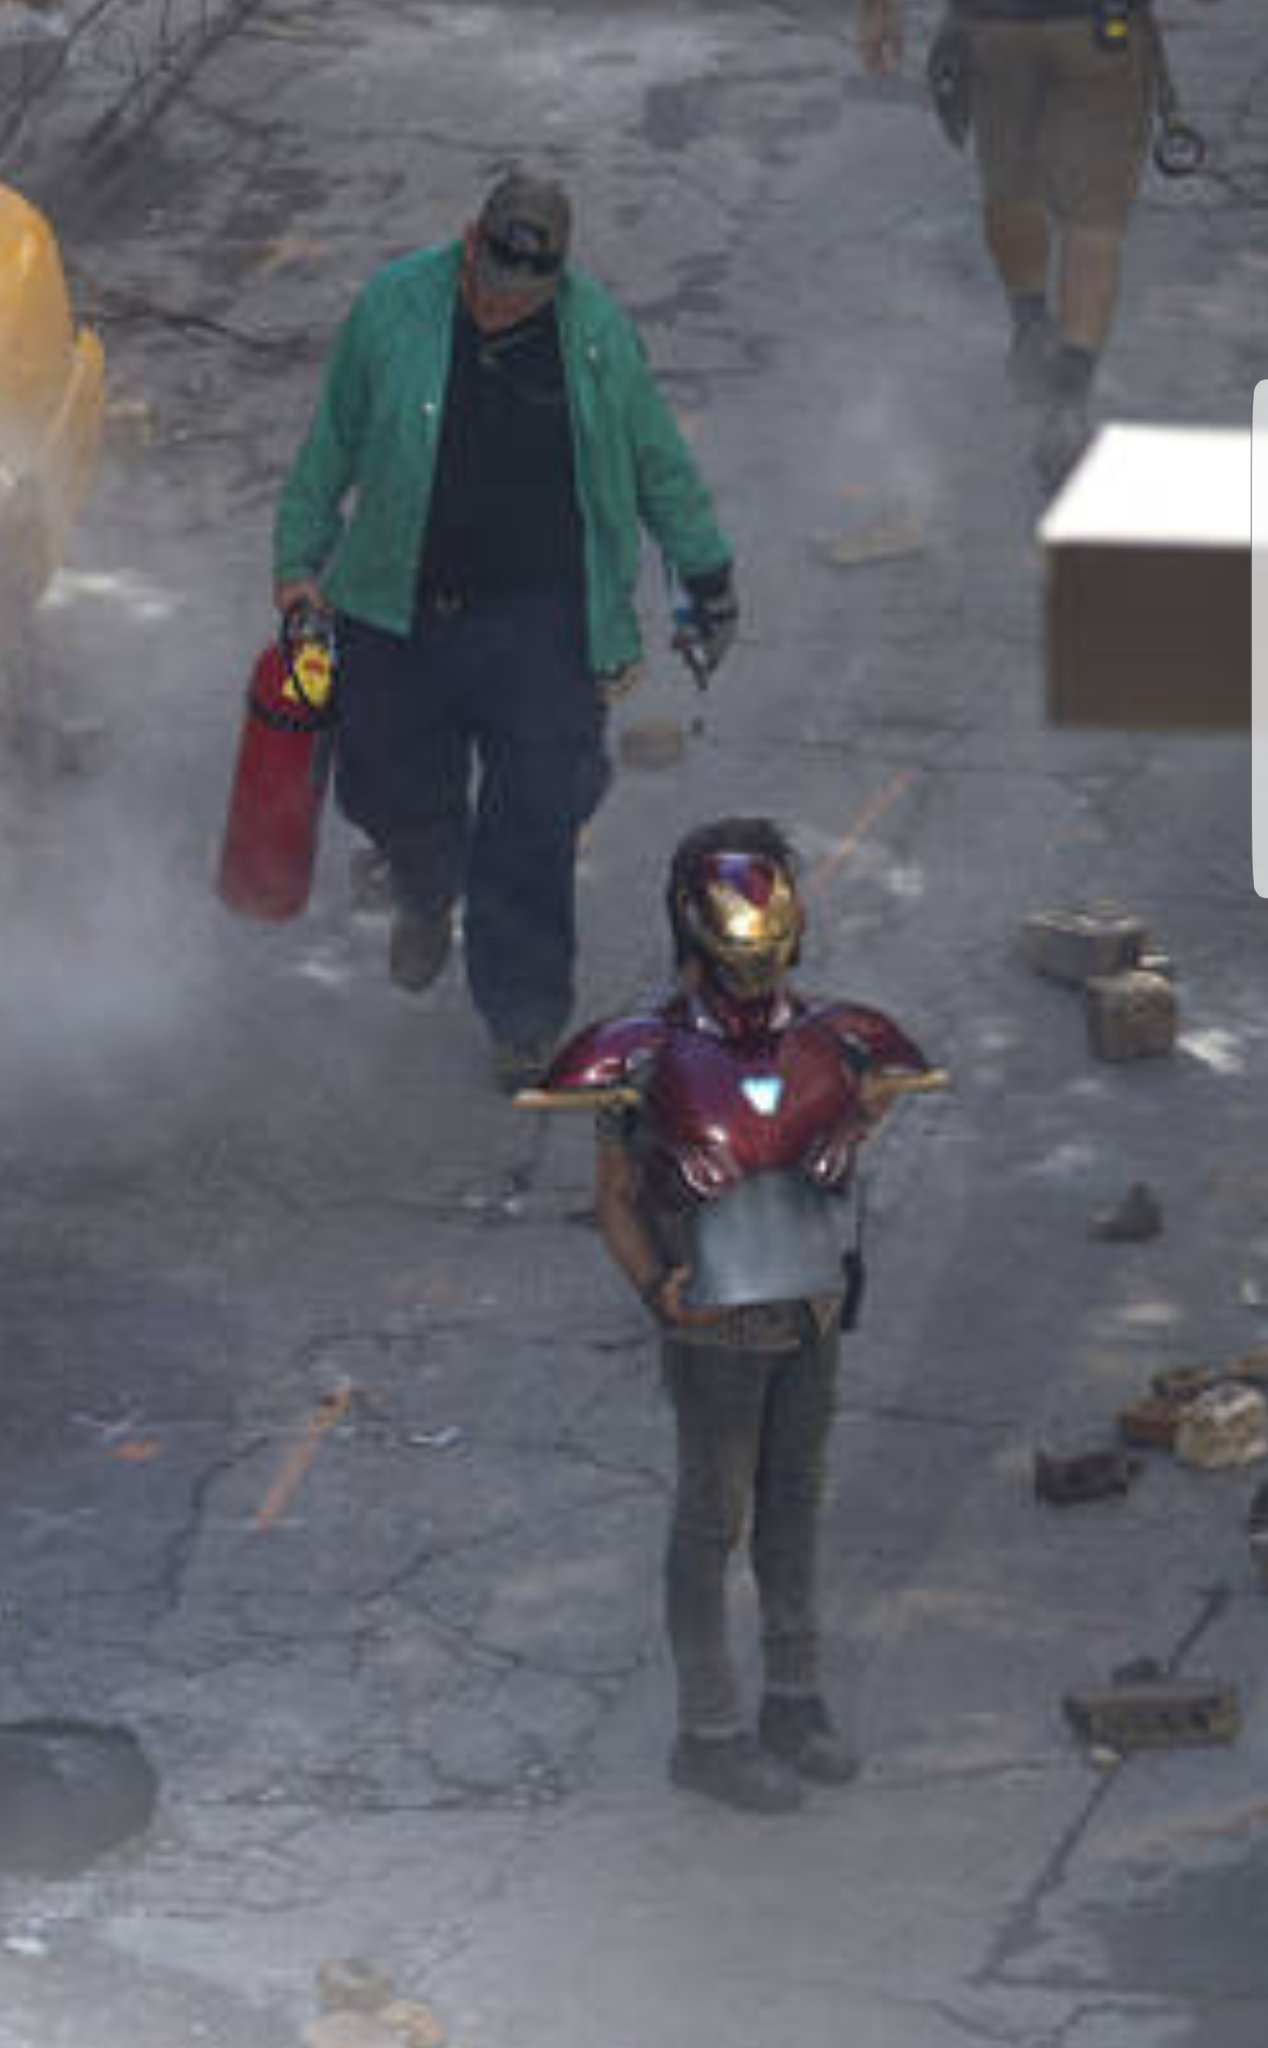 Catch A Glimpse Of Iron Man's Armor In Latest Round Of Avengers: Infinity War Set Photos